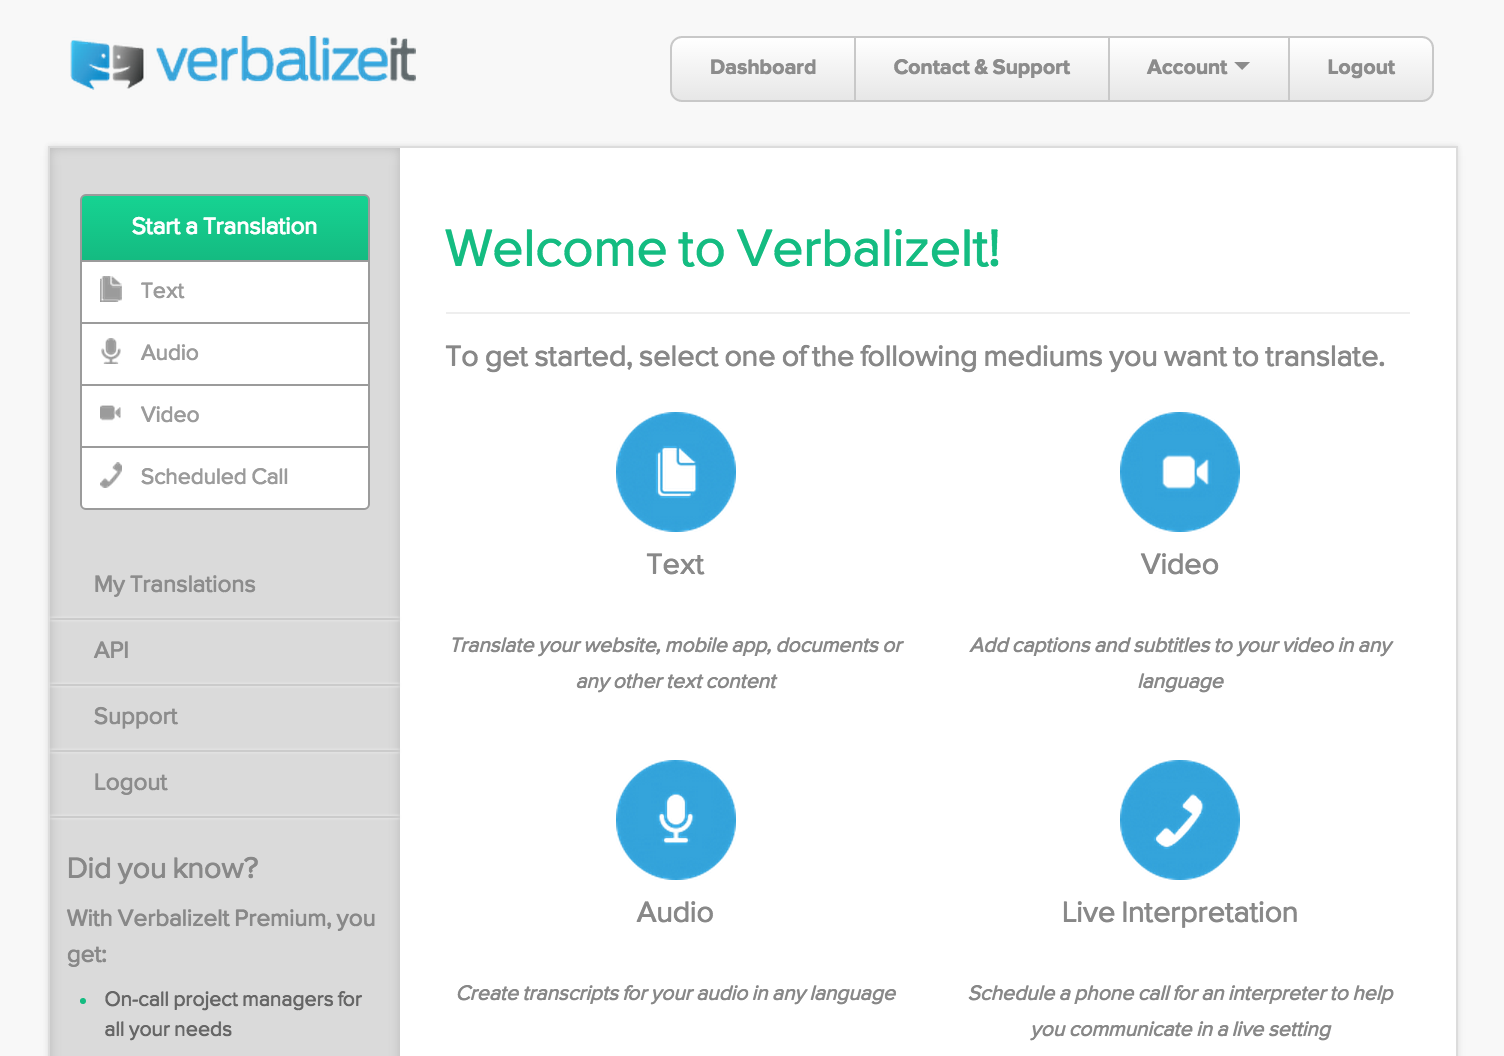 VerbalizeIt Demo - Translate Across All Mediums